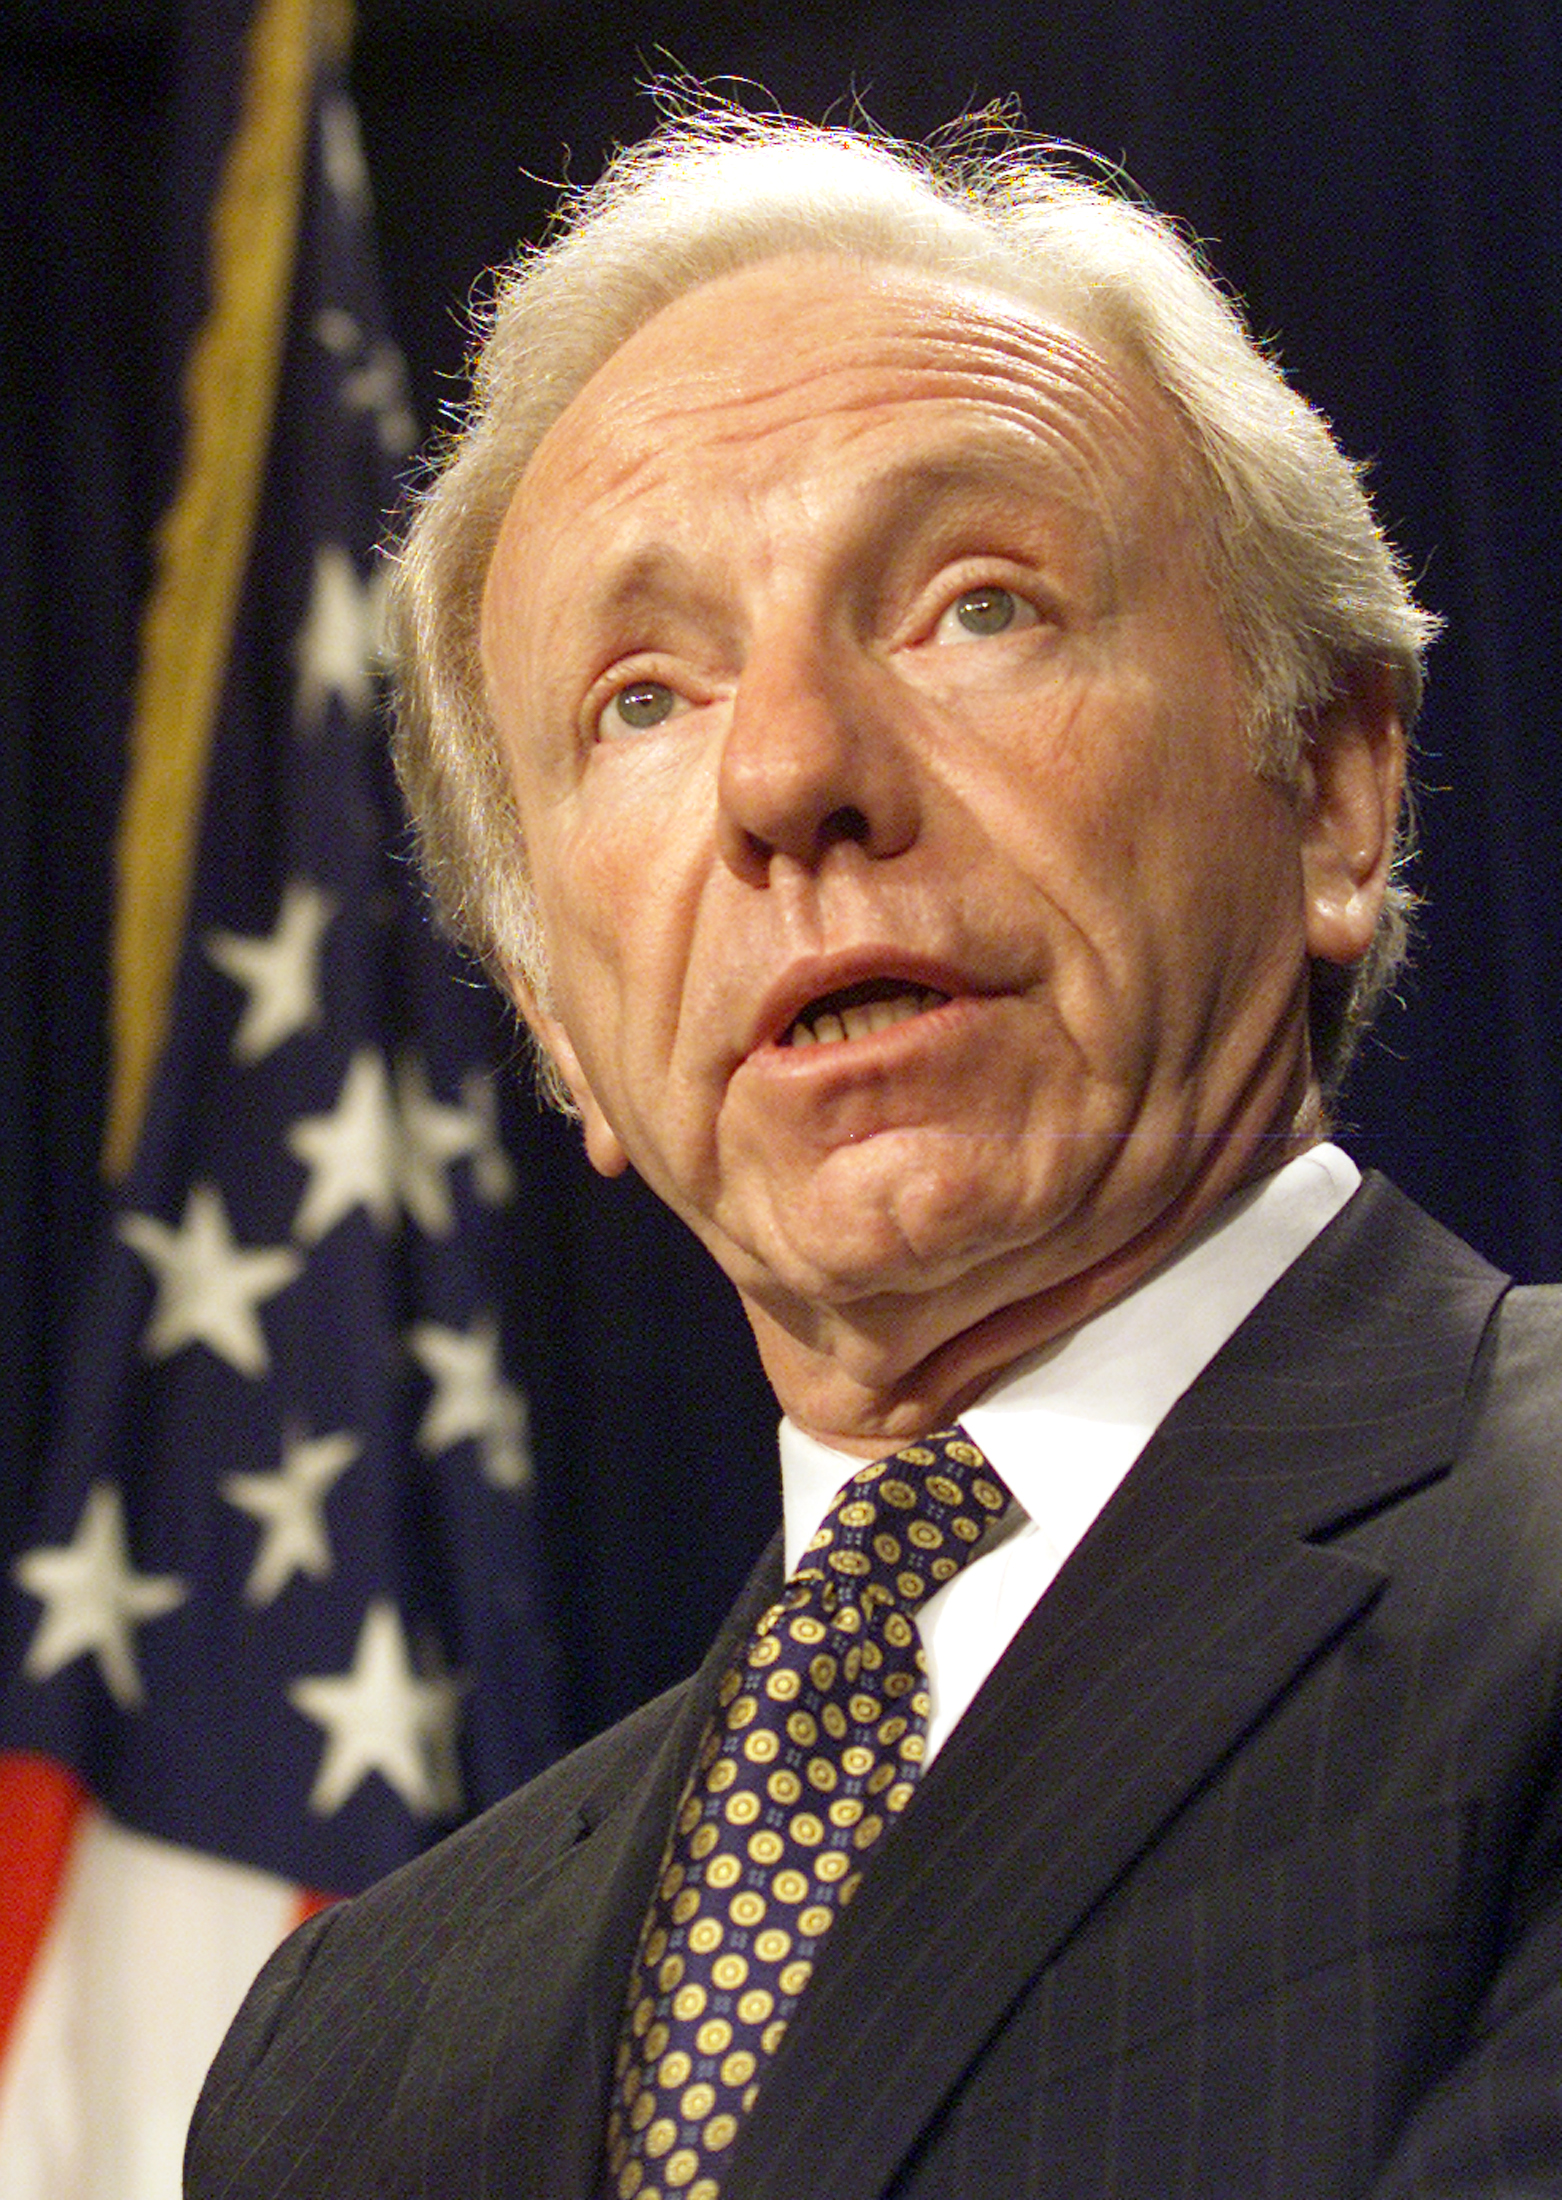 Connecticut Today with Paul Pacelli: A Chat With Former Senator Joe Lieberman